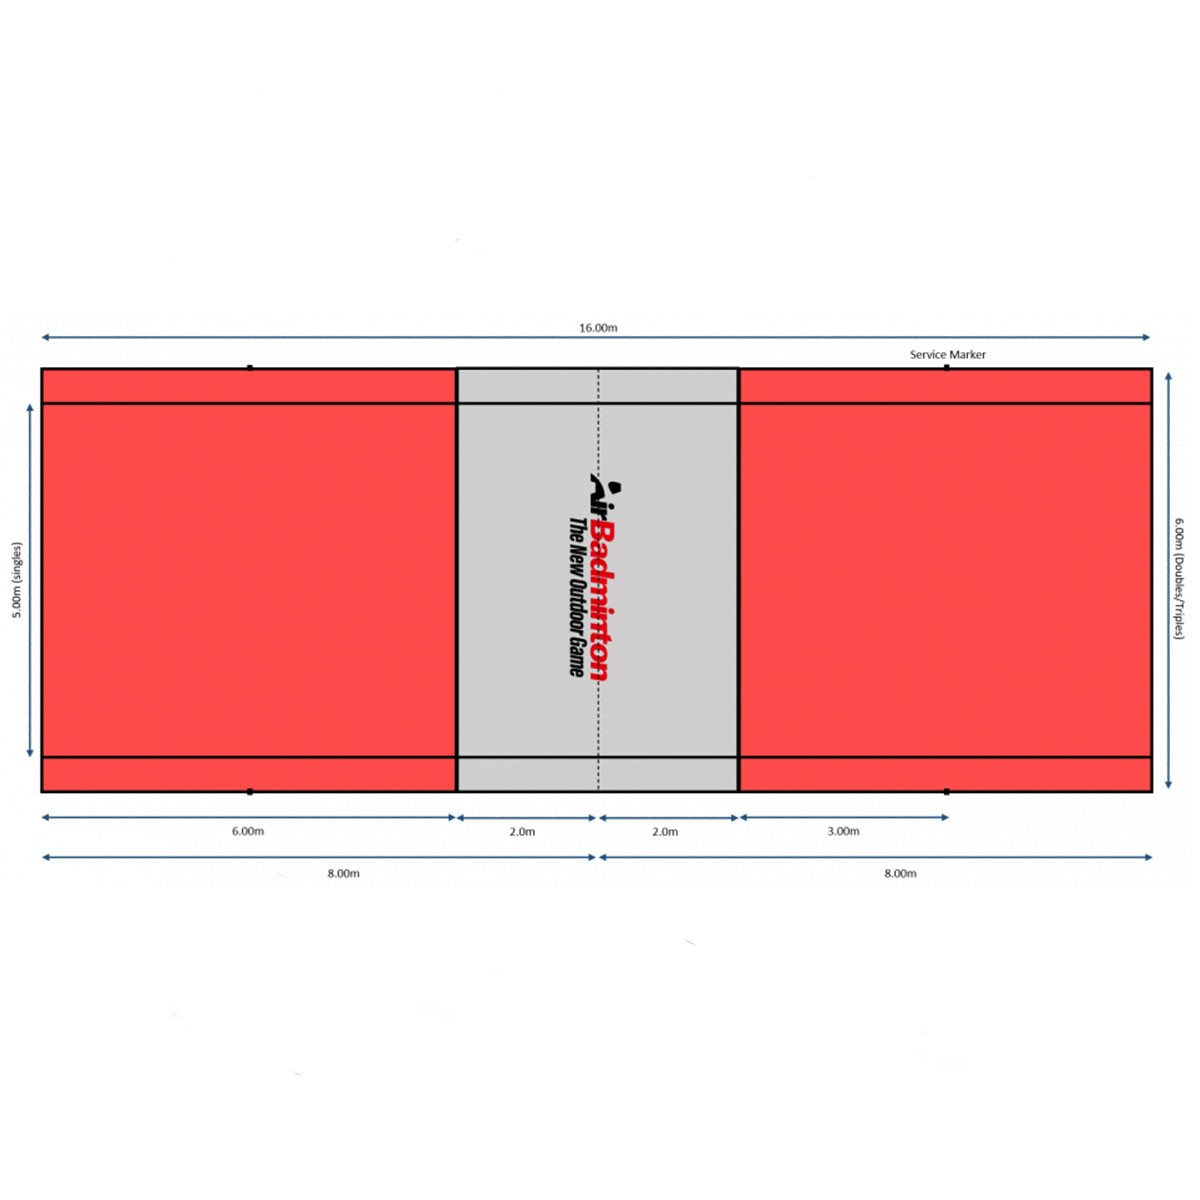 BOUNDARY LINES FOR AIRBADMINTON COURT